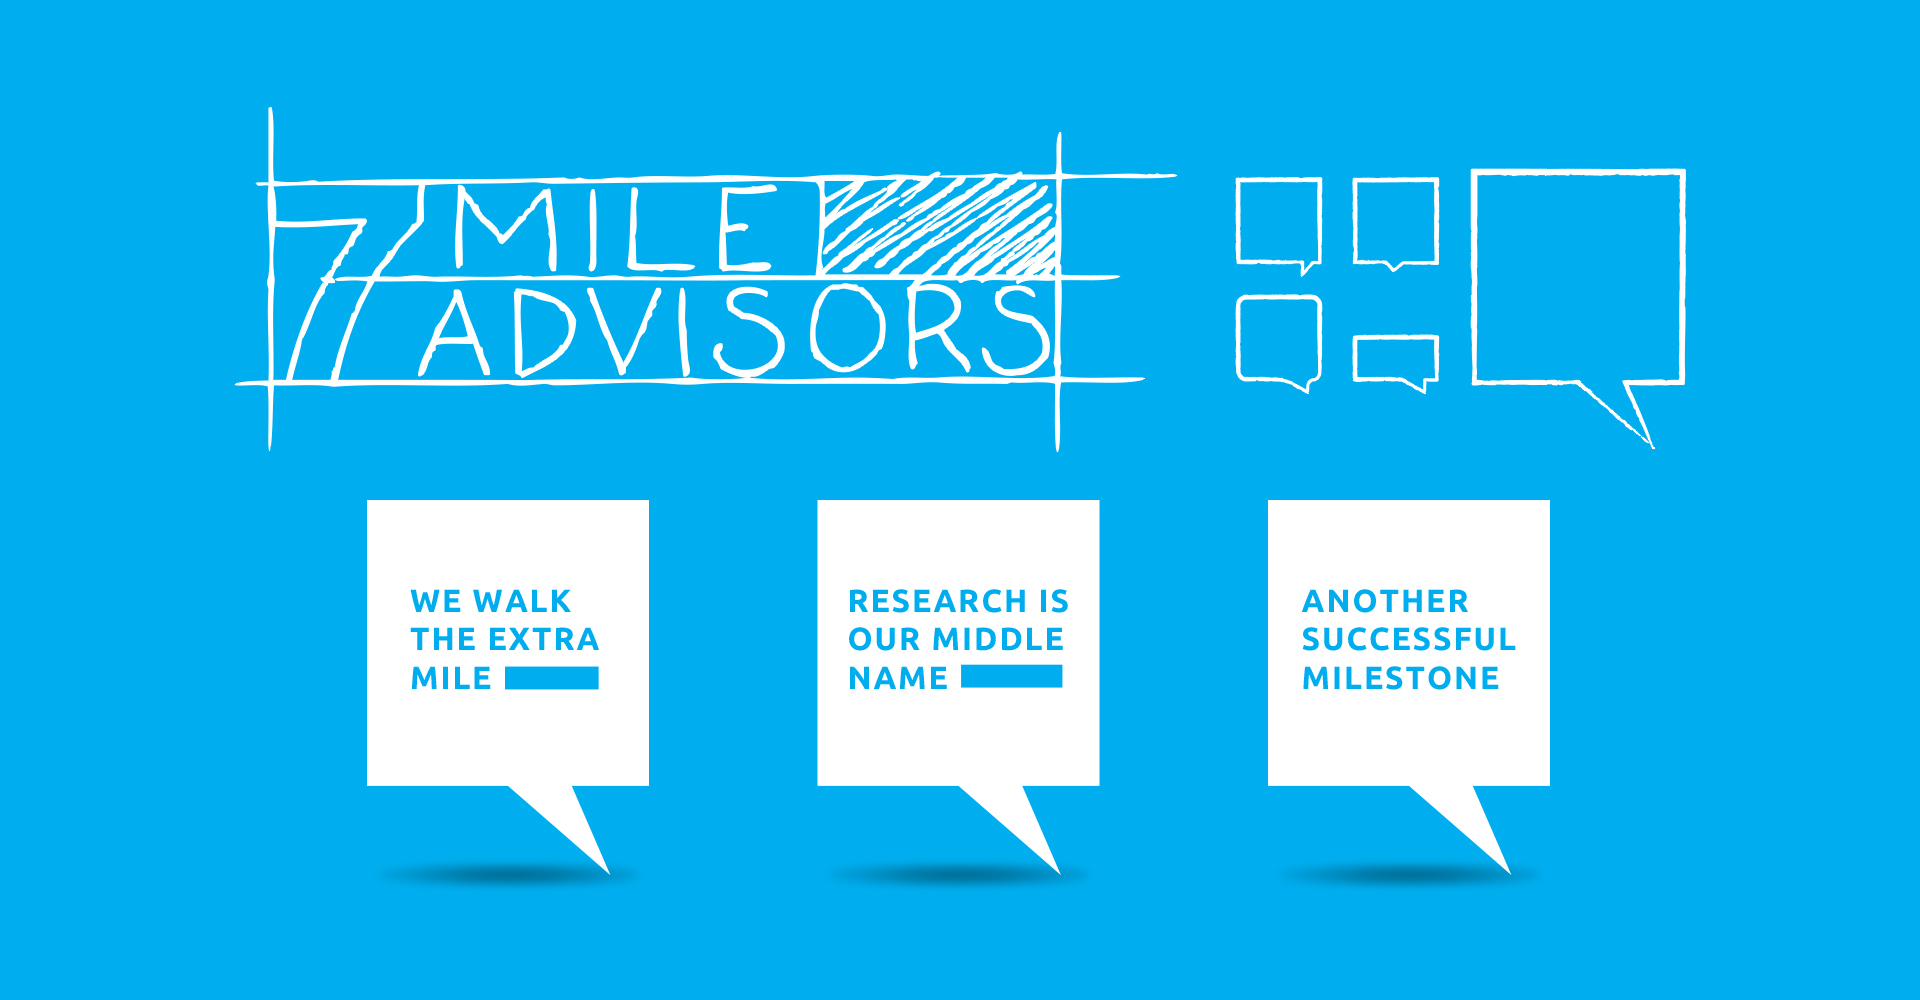 7 Mile Advisors  | Branding Strategy